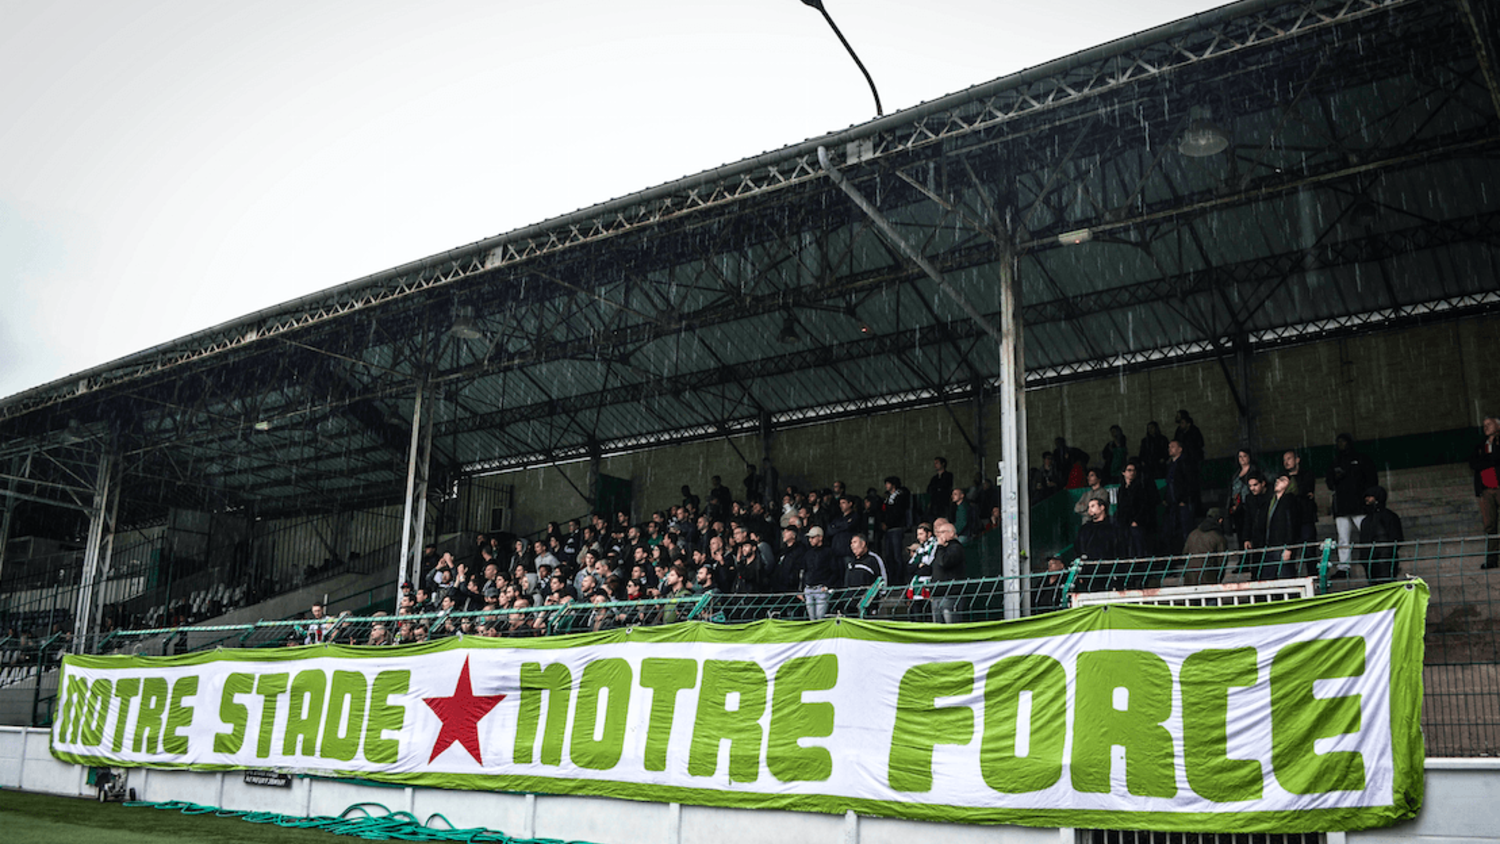 Red Star's fans mobilize for Stade Bauer's renovation